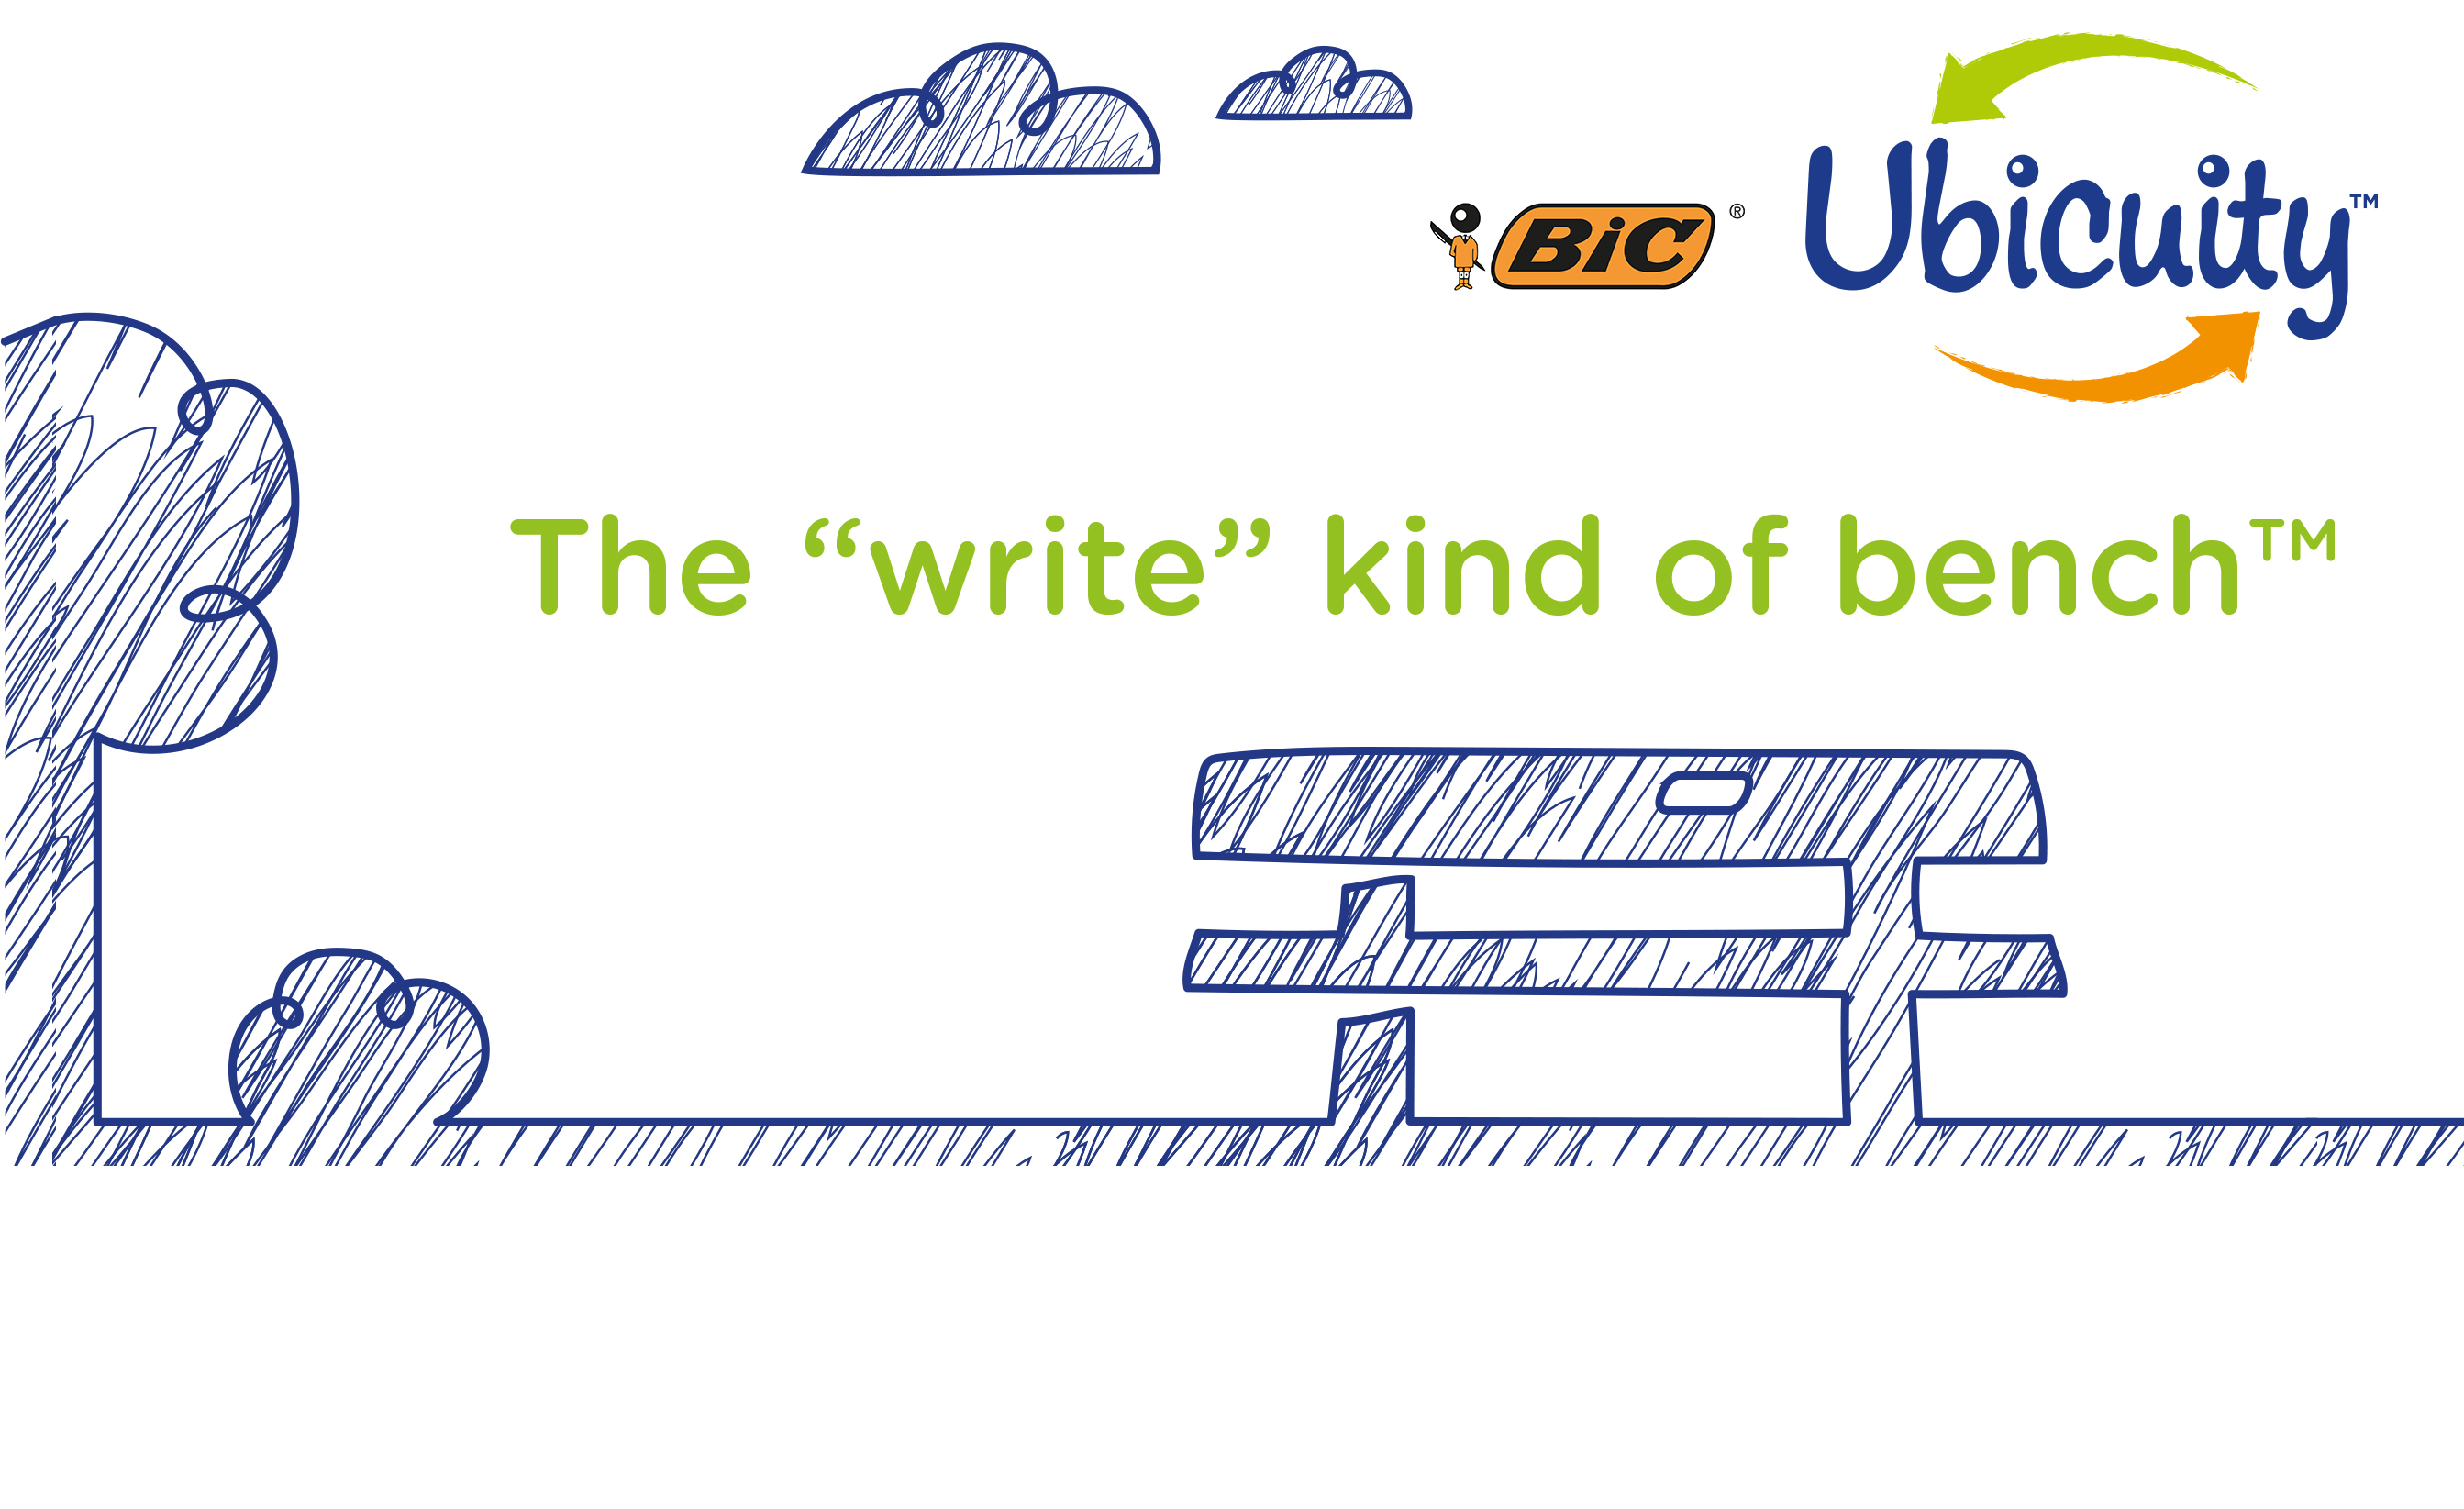 pen drawing with a bench and the logo Ubicuity